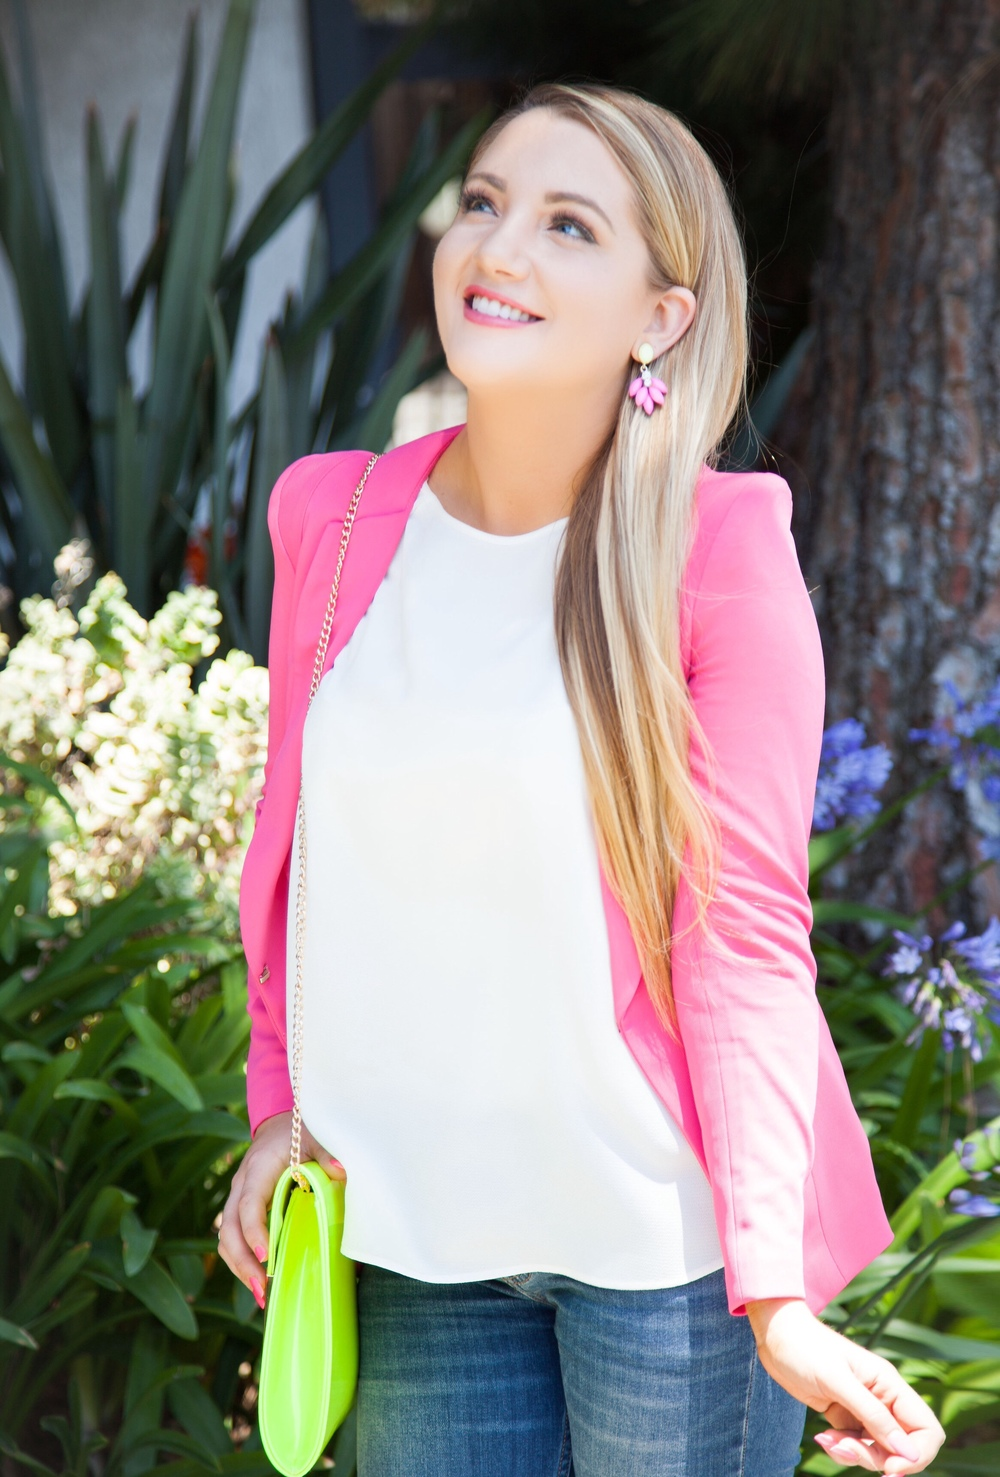 Hee Grand Women's Slim Suit, Mango White Pleated Neck Crepe Blouse, Neon Clutch